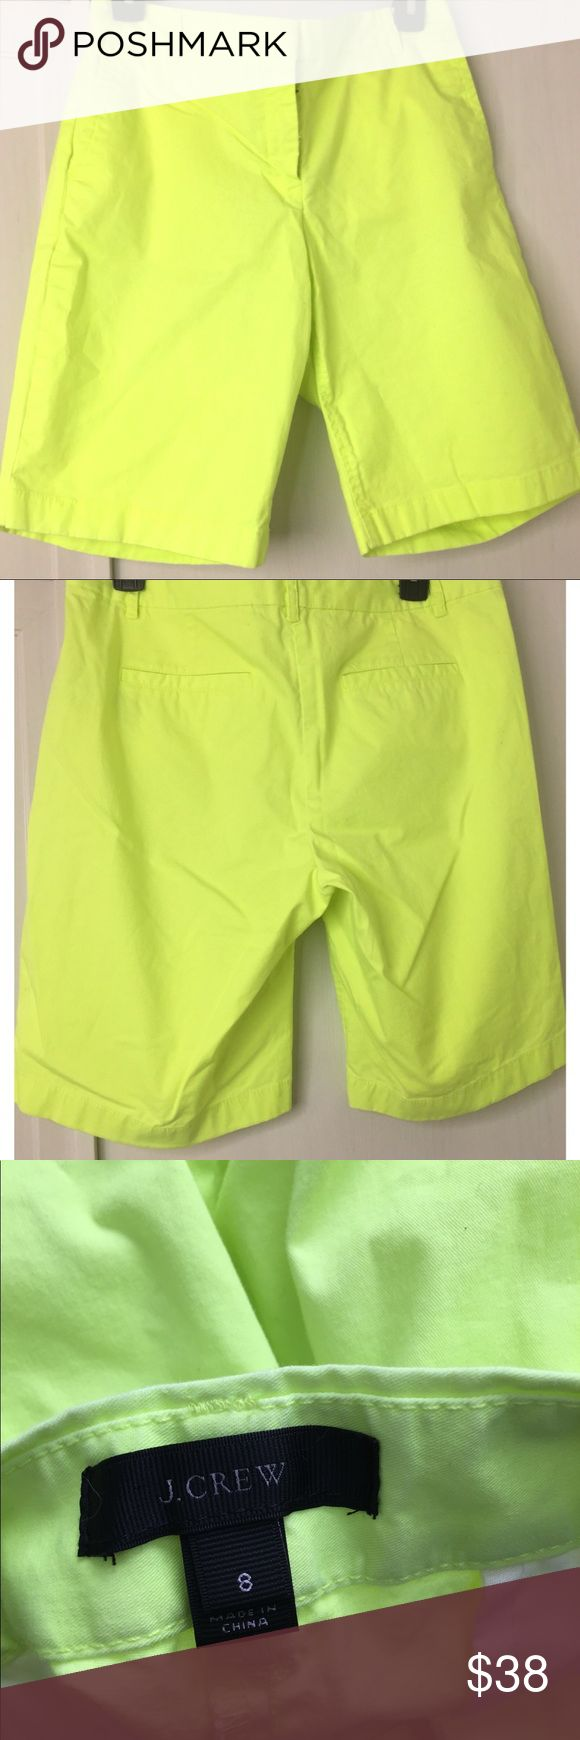 J. Crew Neon Shorts Cute neon colored shorts by J. Crew. Cross between a yellow highlighter color and green. Pockets in front and back. J. Crew Shorts Bermudas